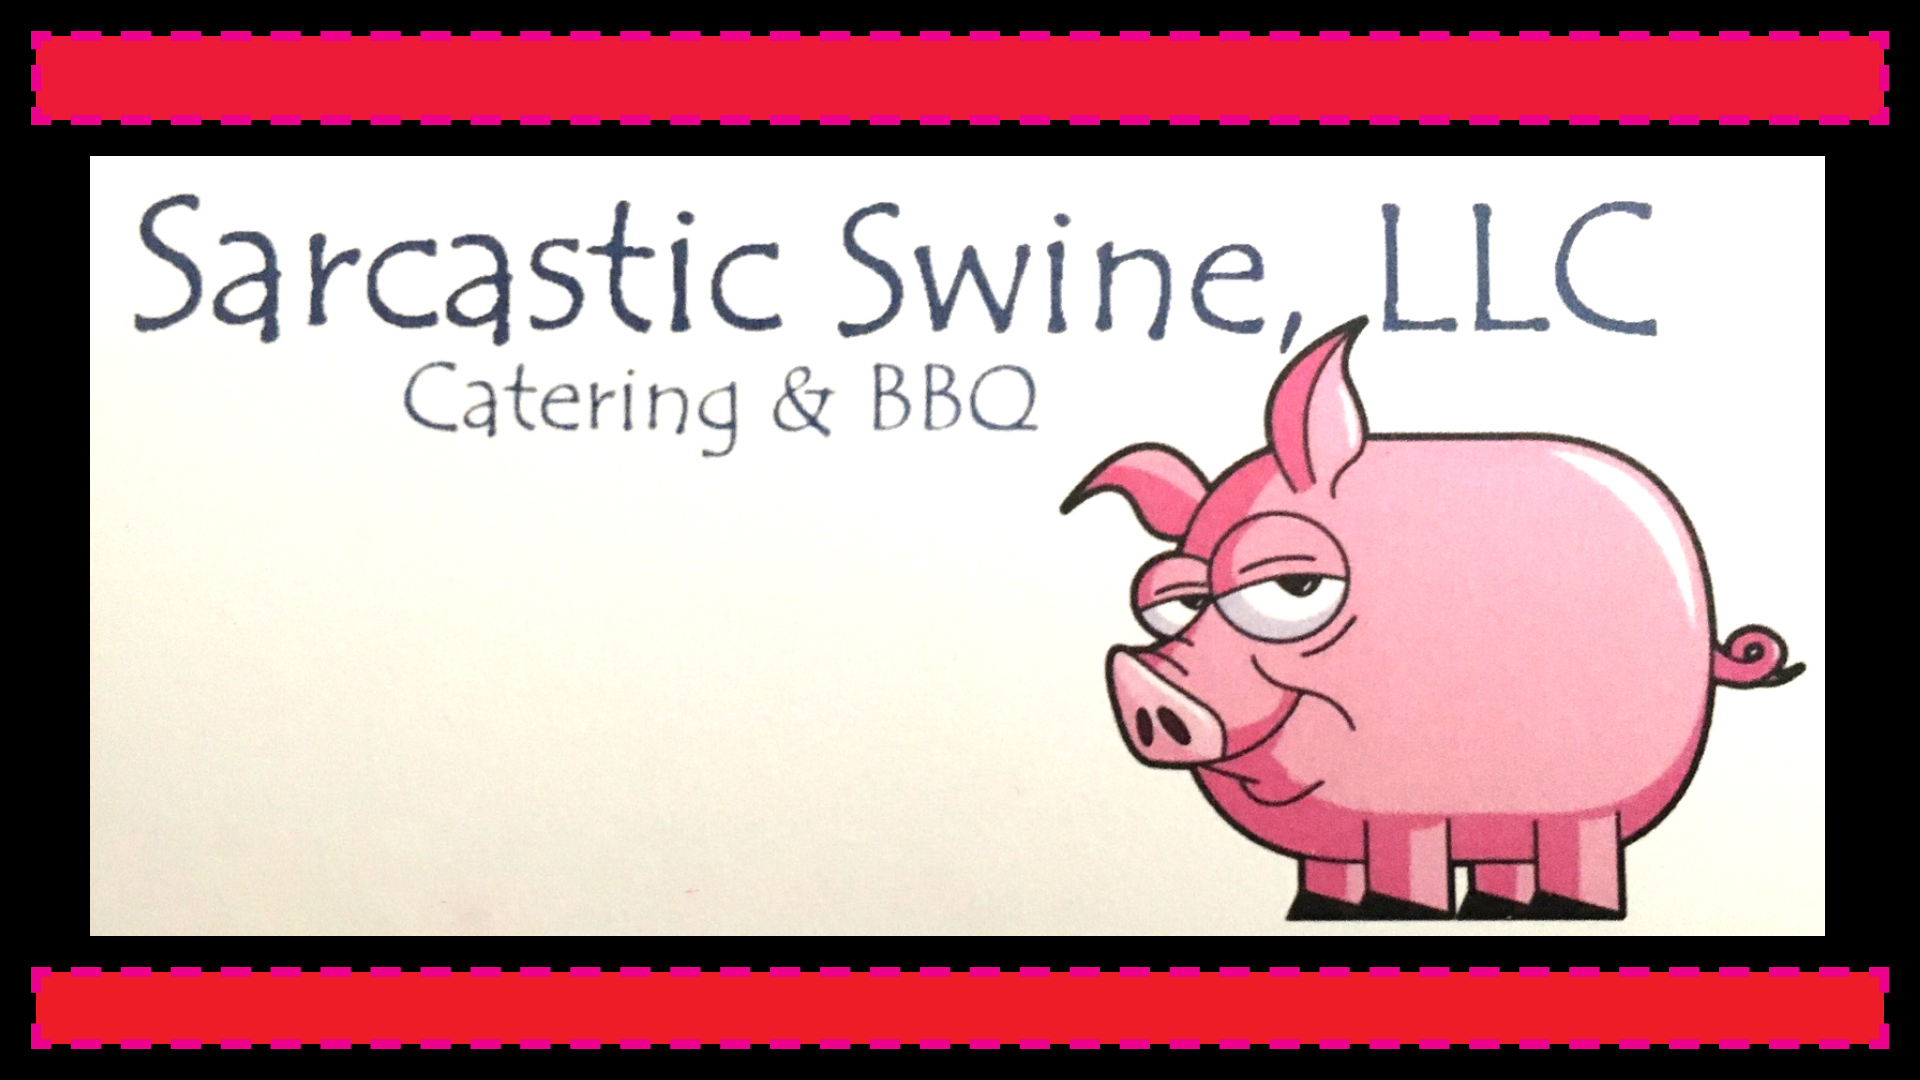 Great local BBQ!